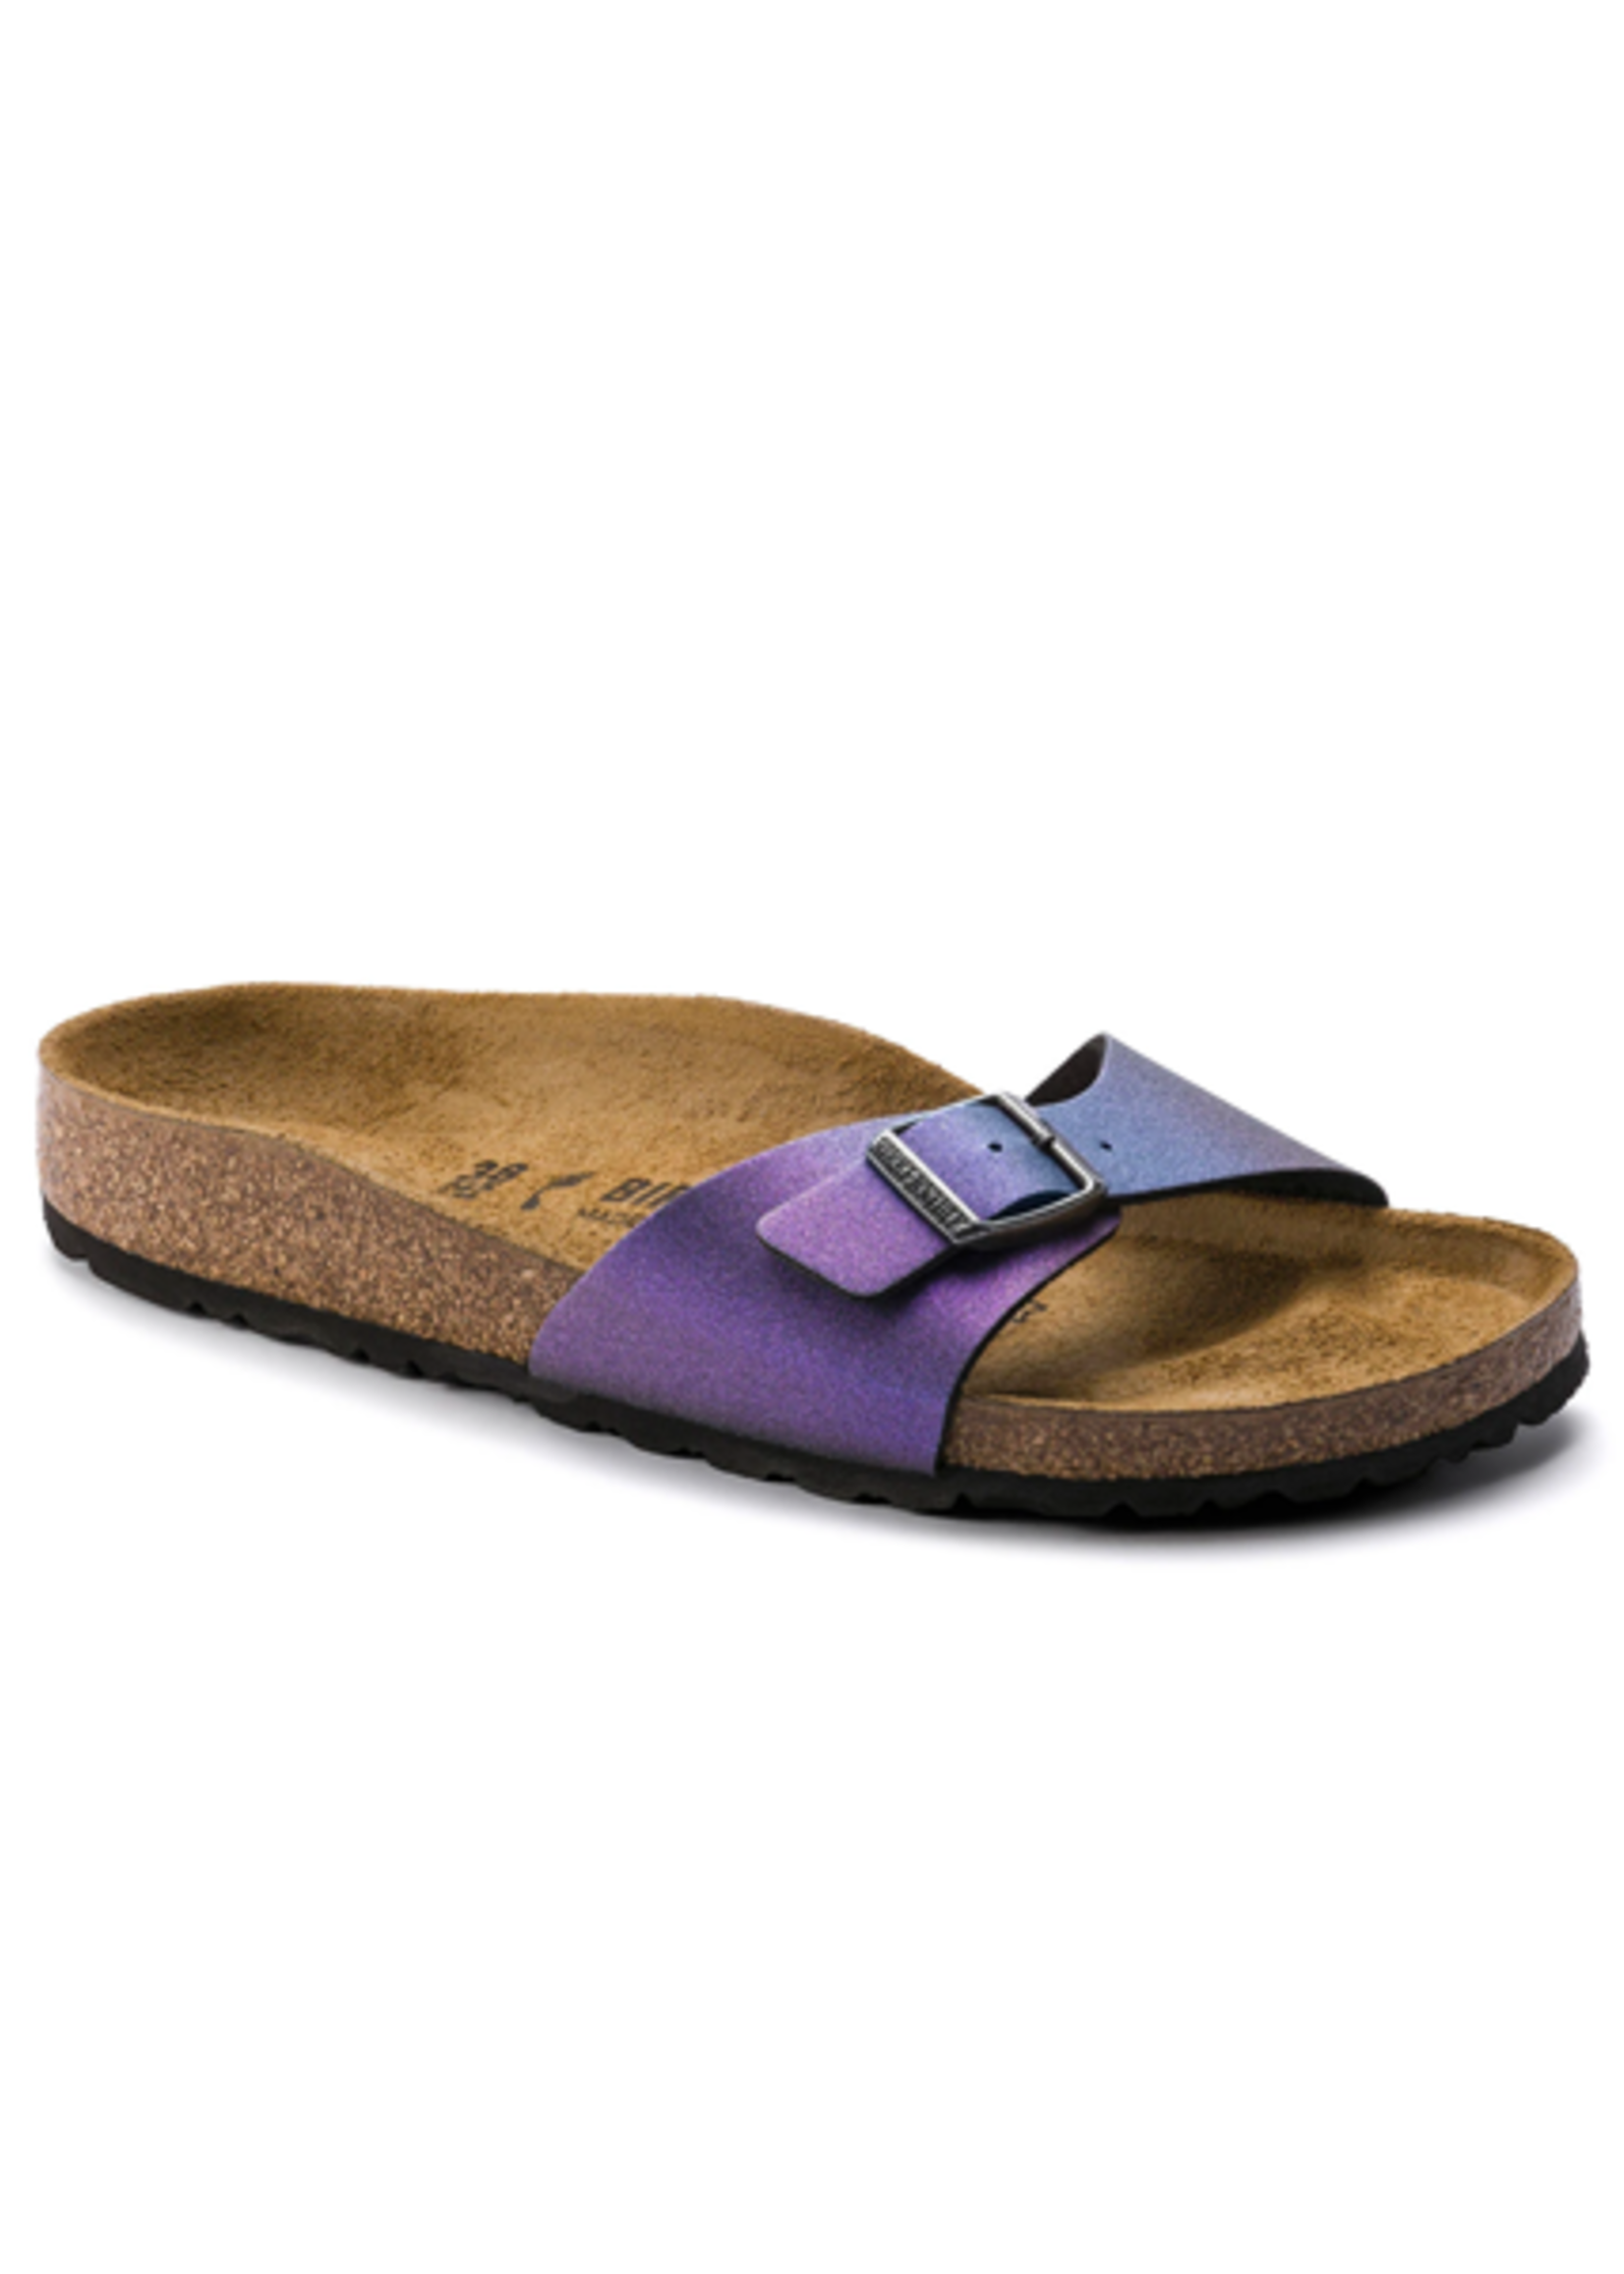 Birkenstock Madrid - Birko-Flor in Icy Metallic Violet (Classic Footbed - Suede Lined)